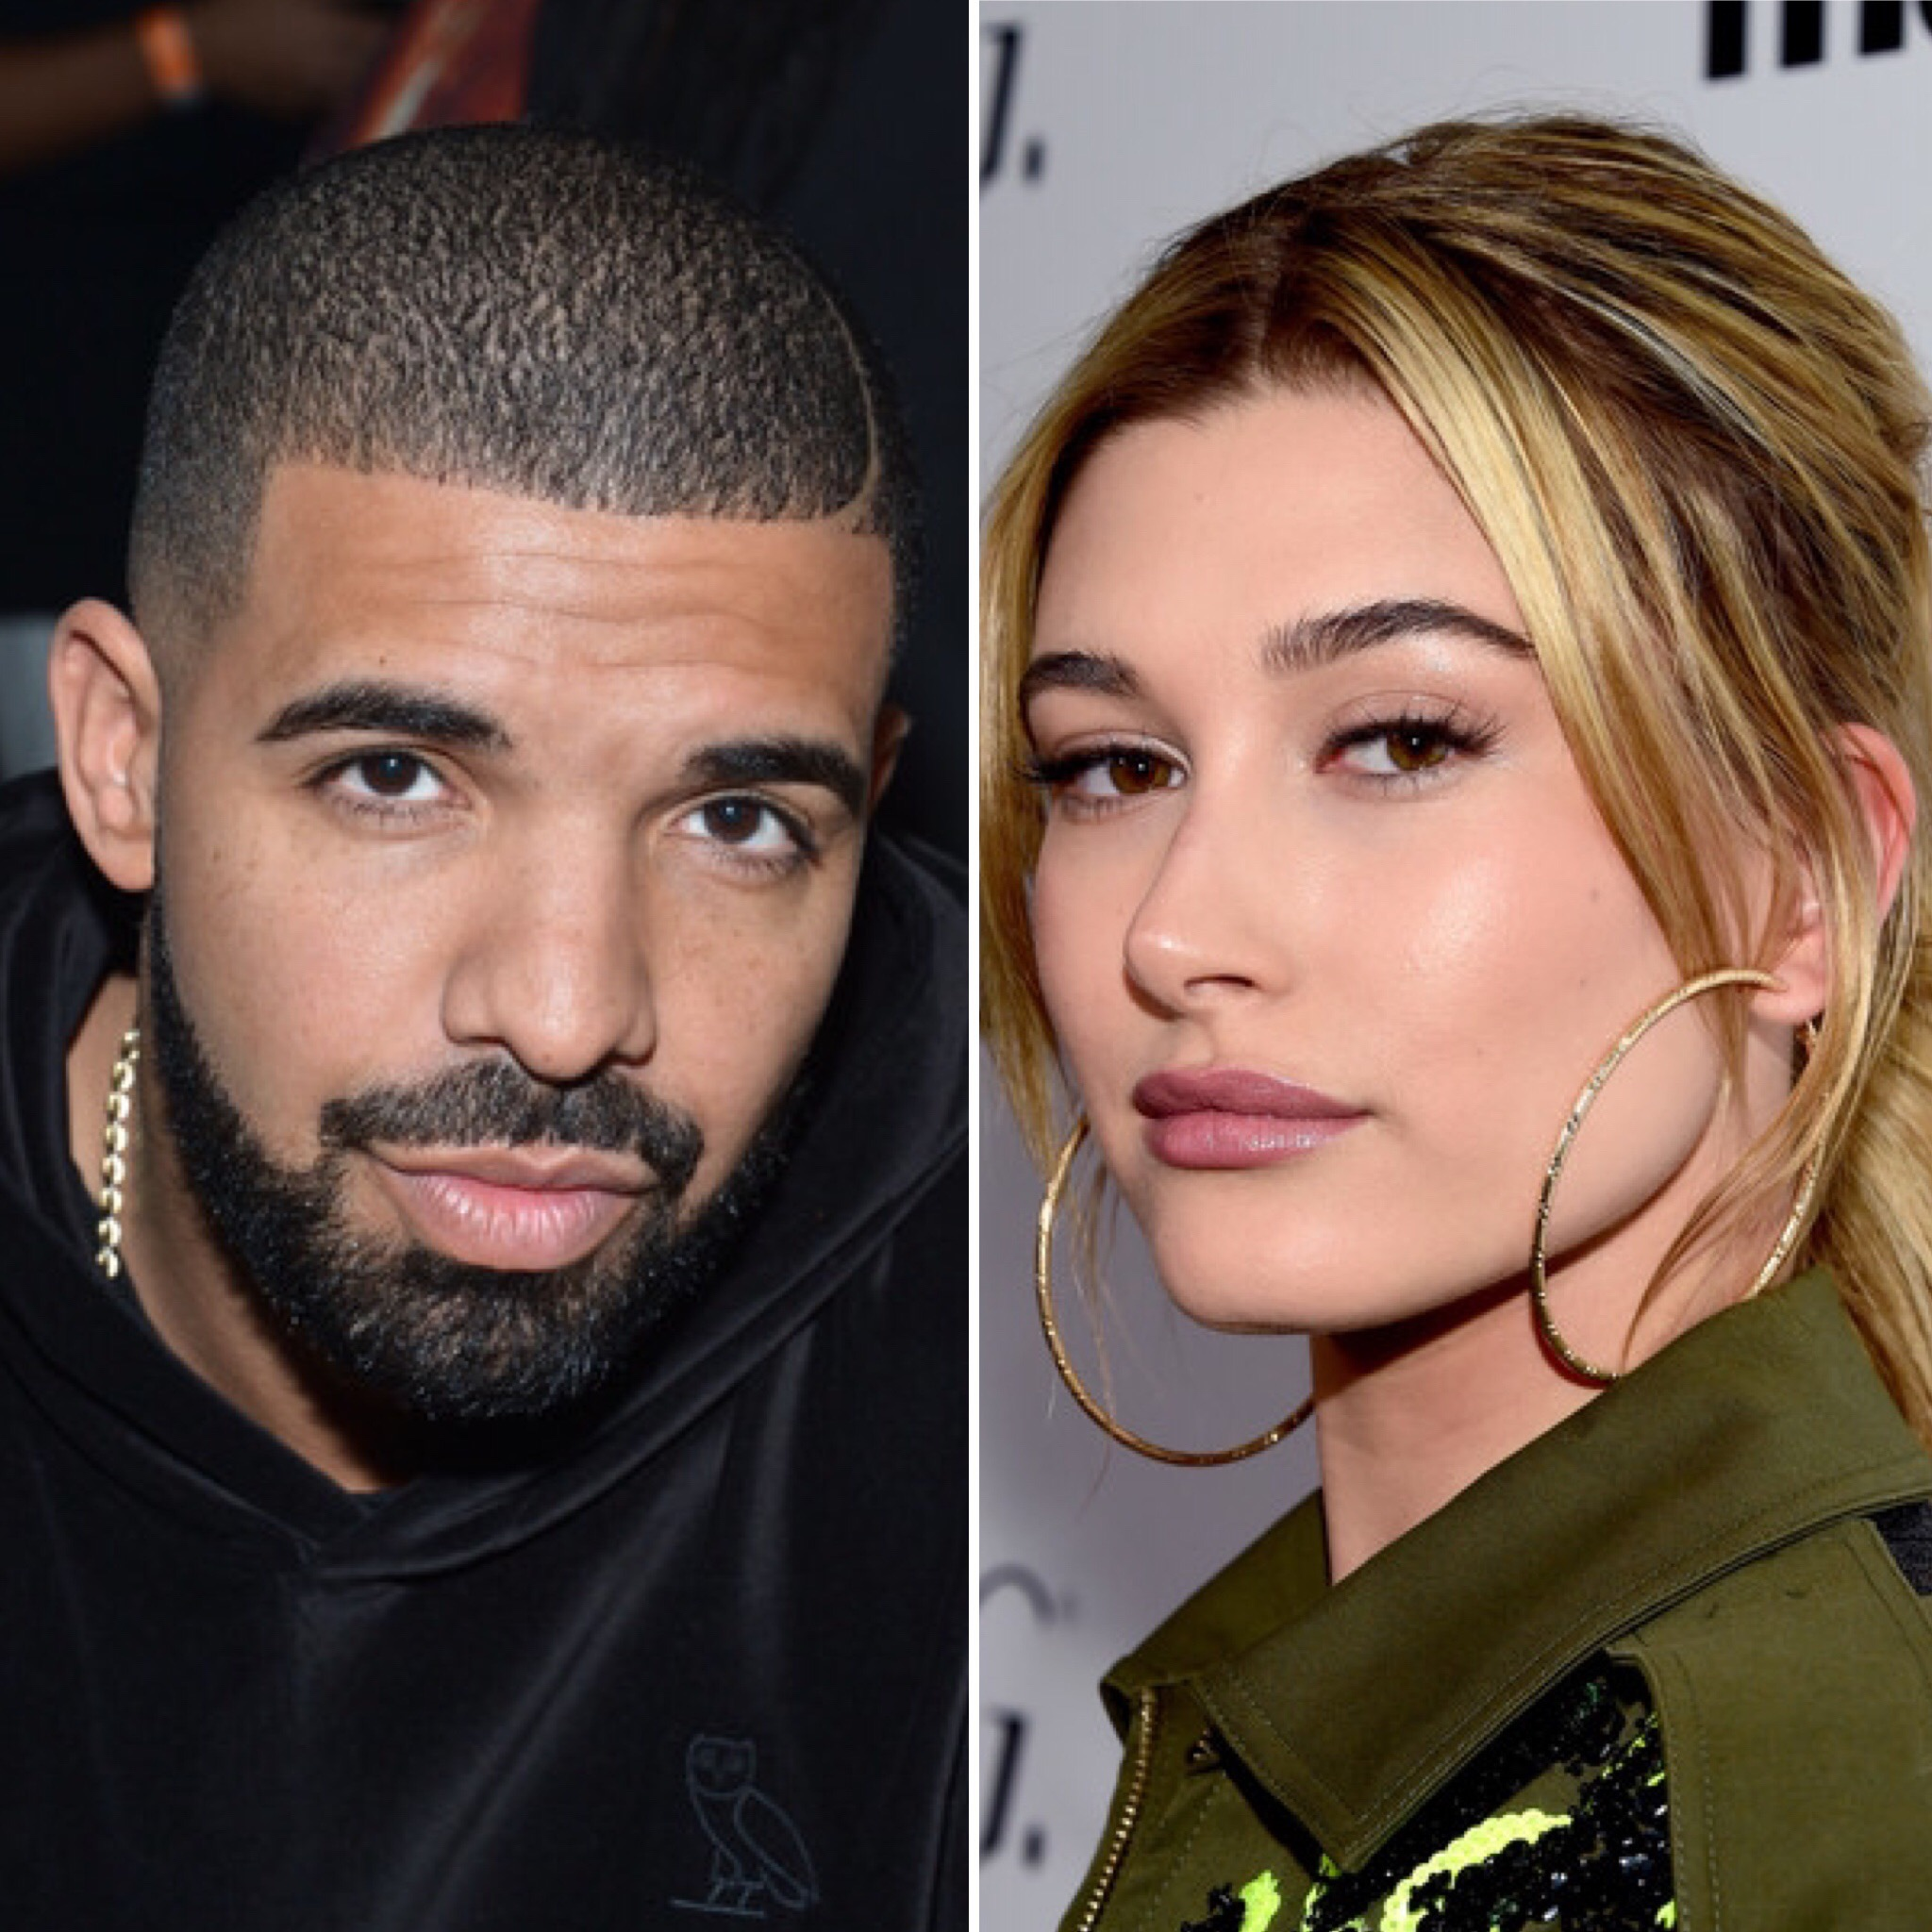 Drake and Hailey Baldwin